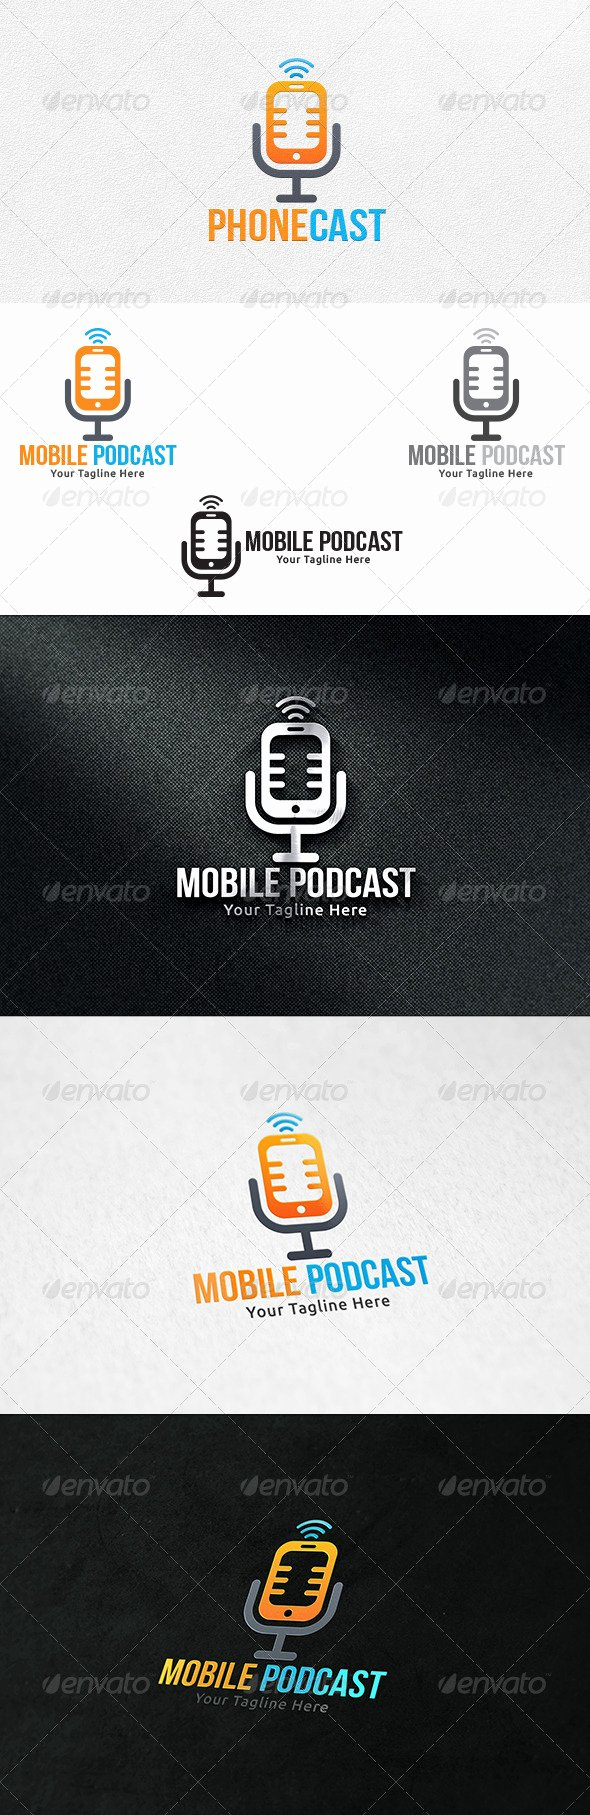 Podcast Business Plan Template Luxury Mobile Podcast Logo Template Logos